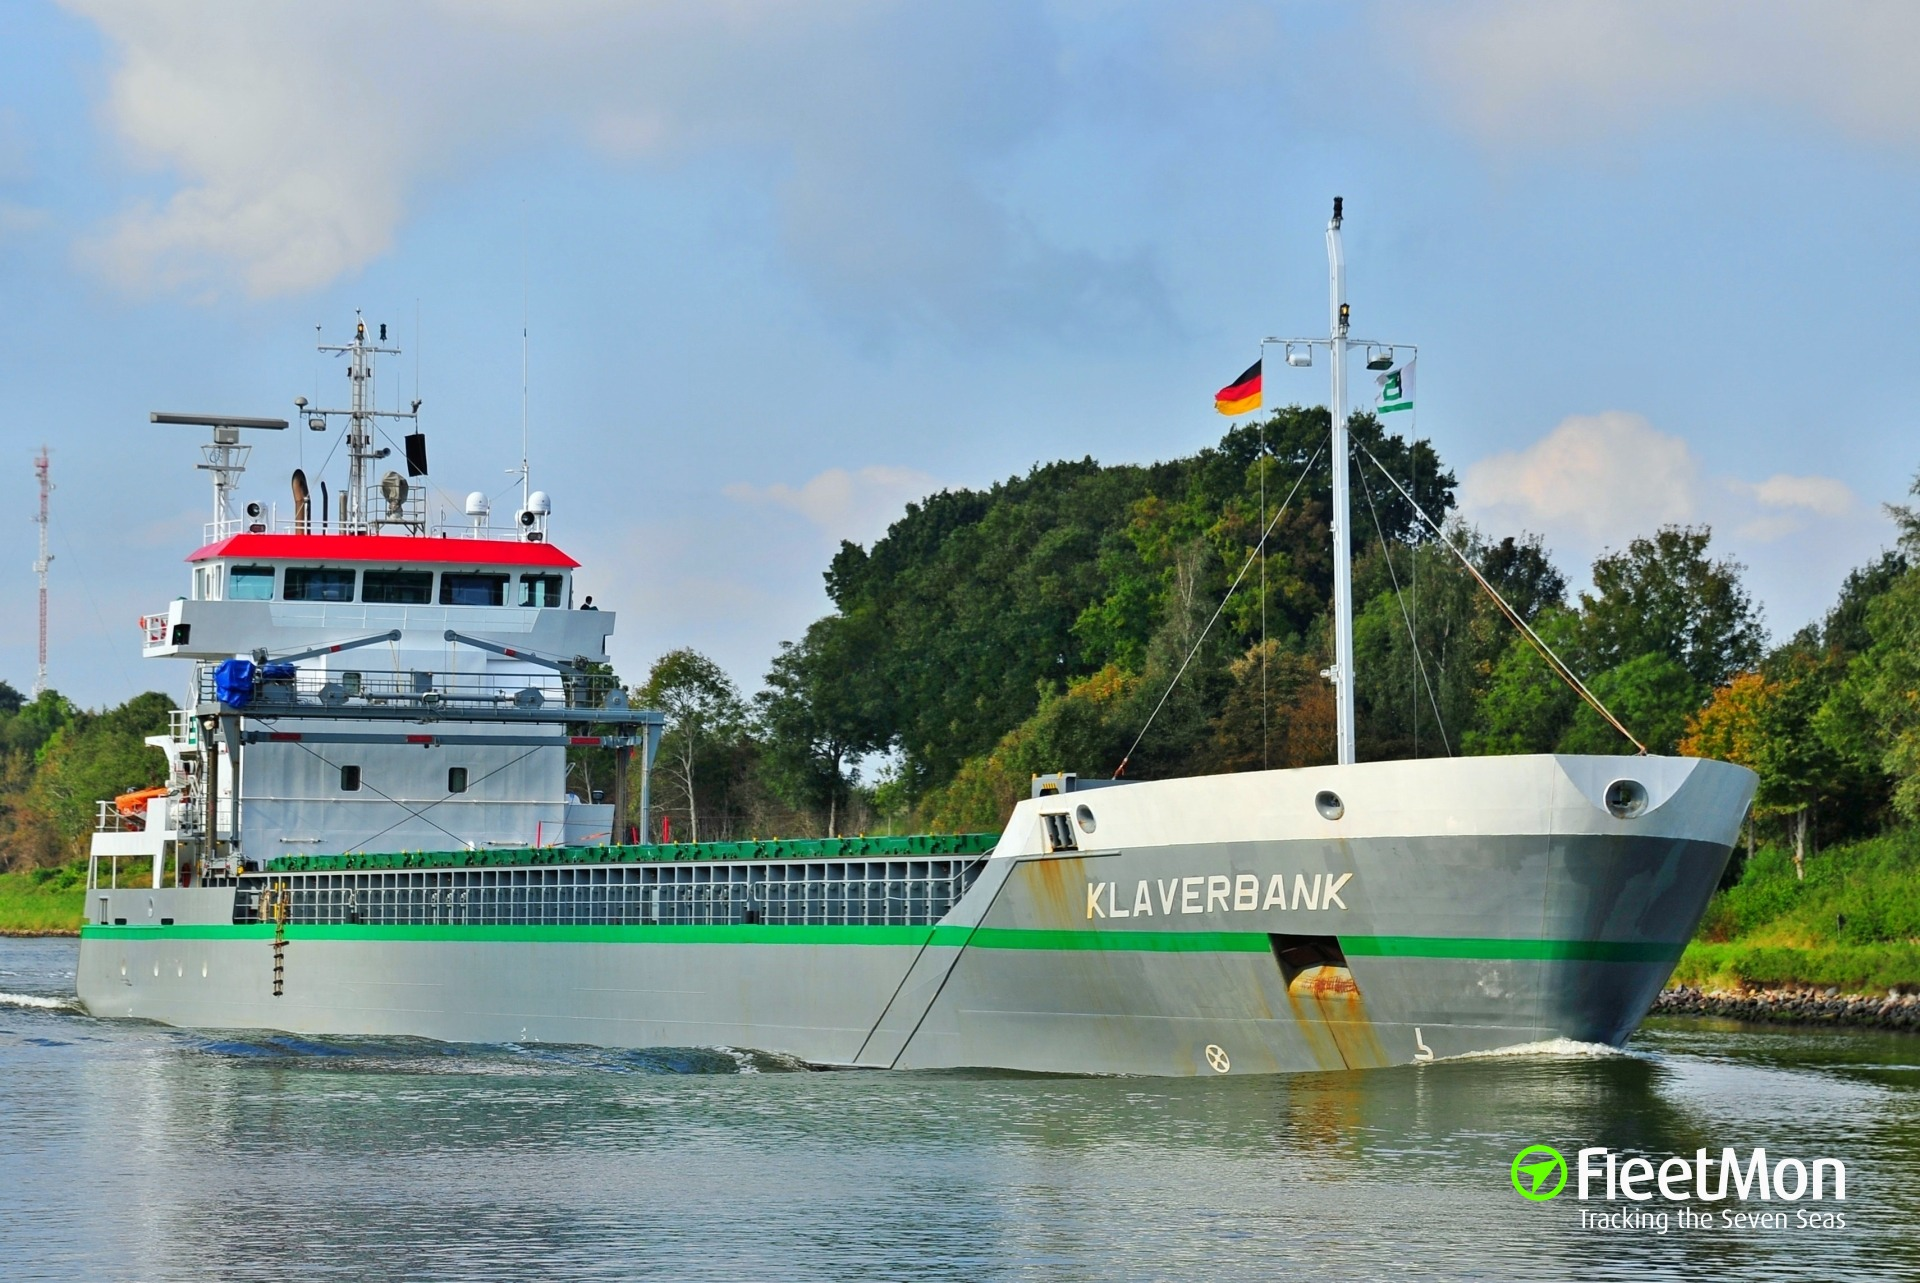 Freighter Klaverbank disabled but fixed problem